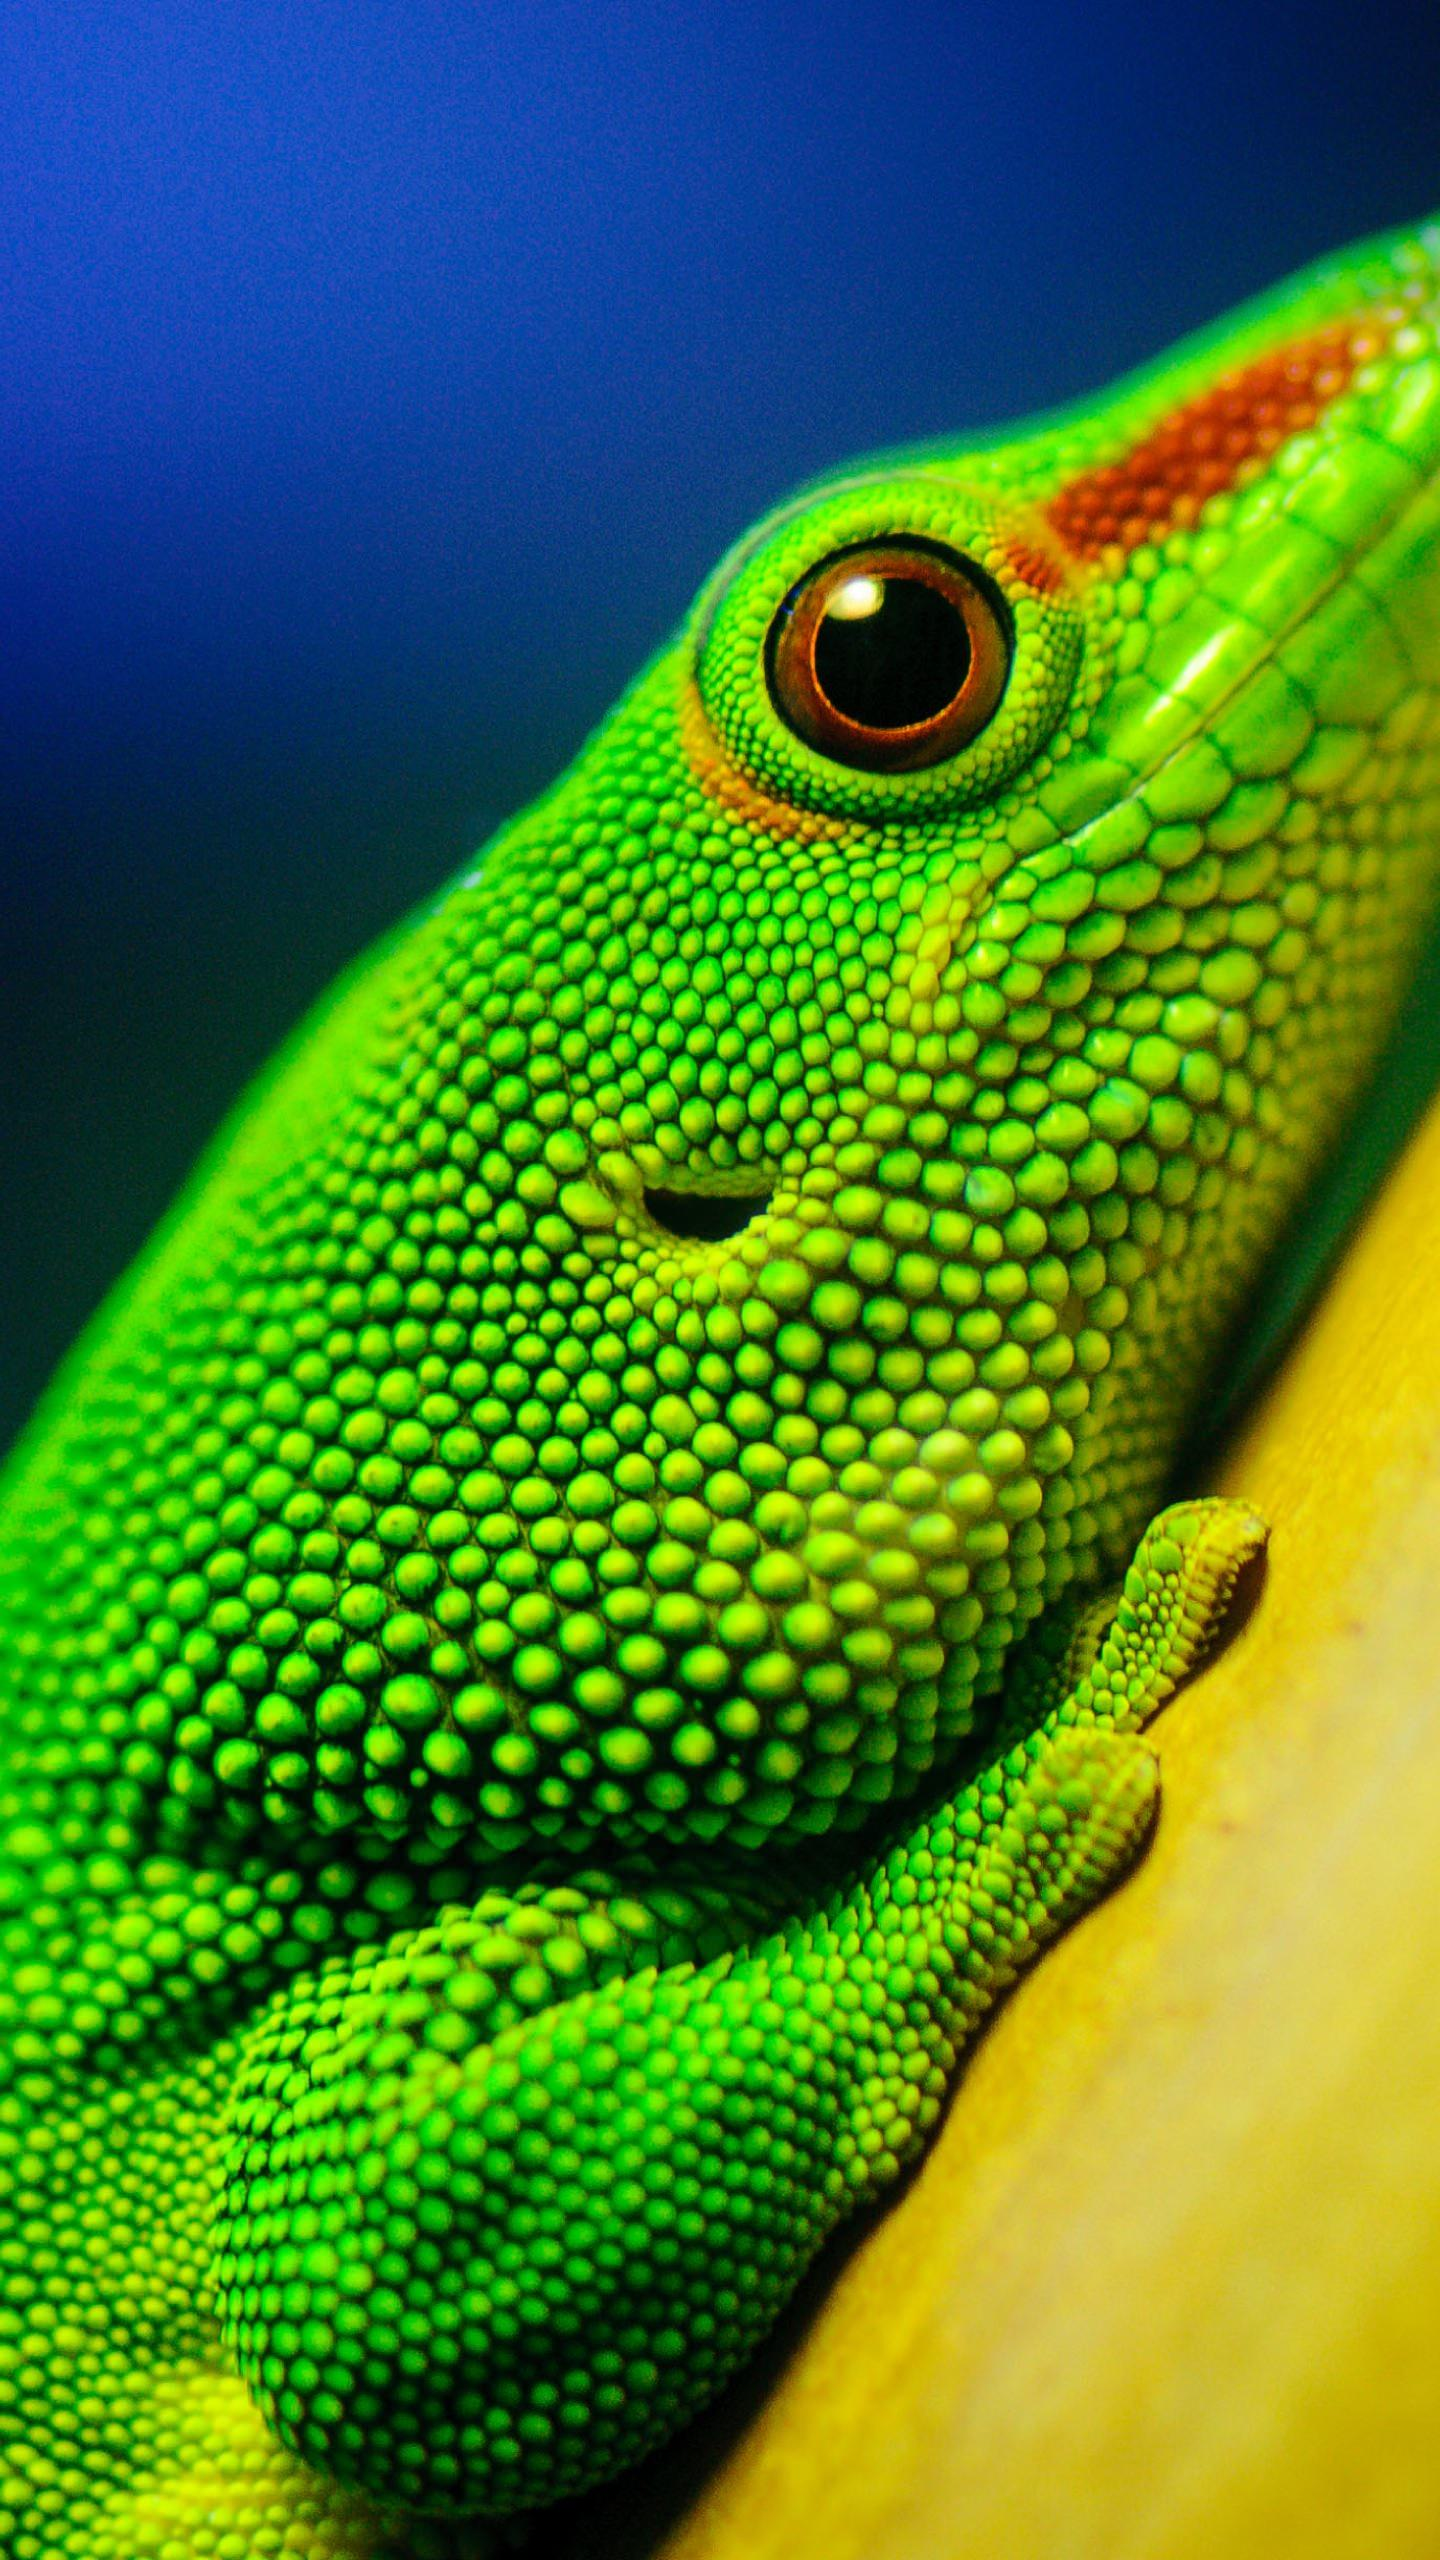 Iphone X Live Wallpaper For Android Animal Green Lizard Wallpaper Sc Smartphone